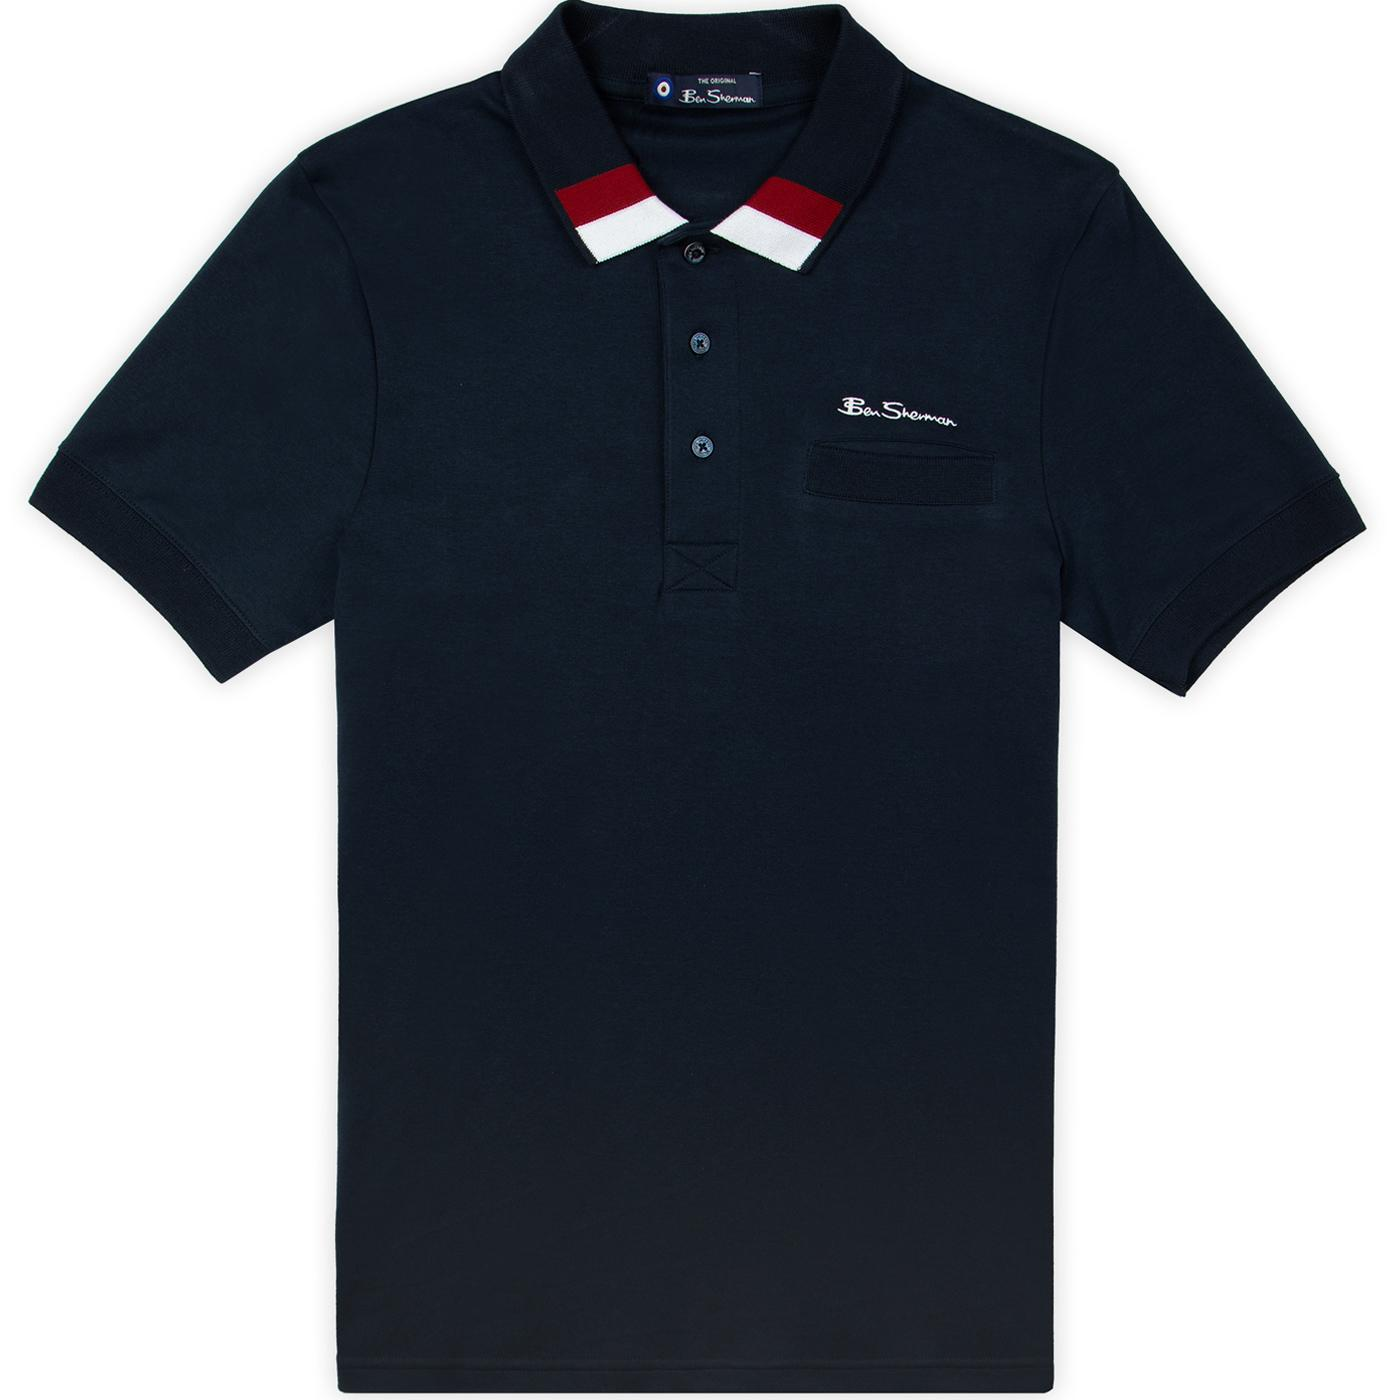 BEN SHERMAN Mod Block Trimmed Pocket Polo Top (DN)